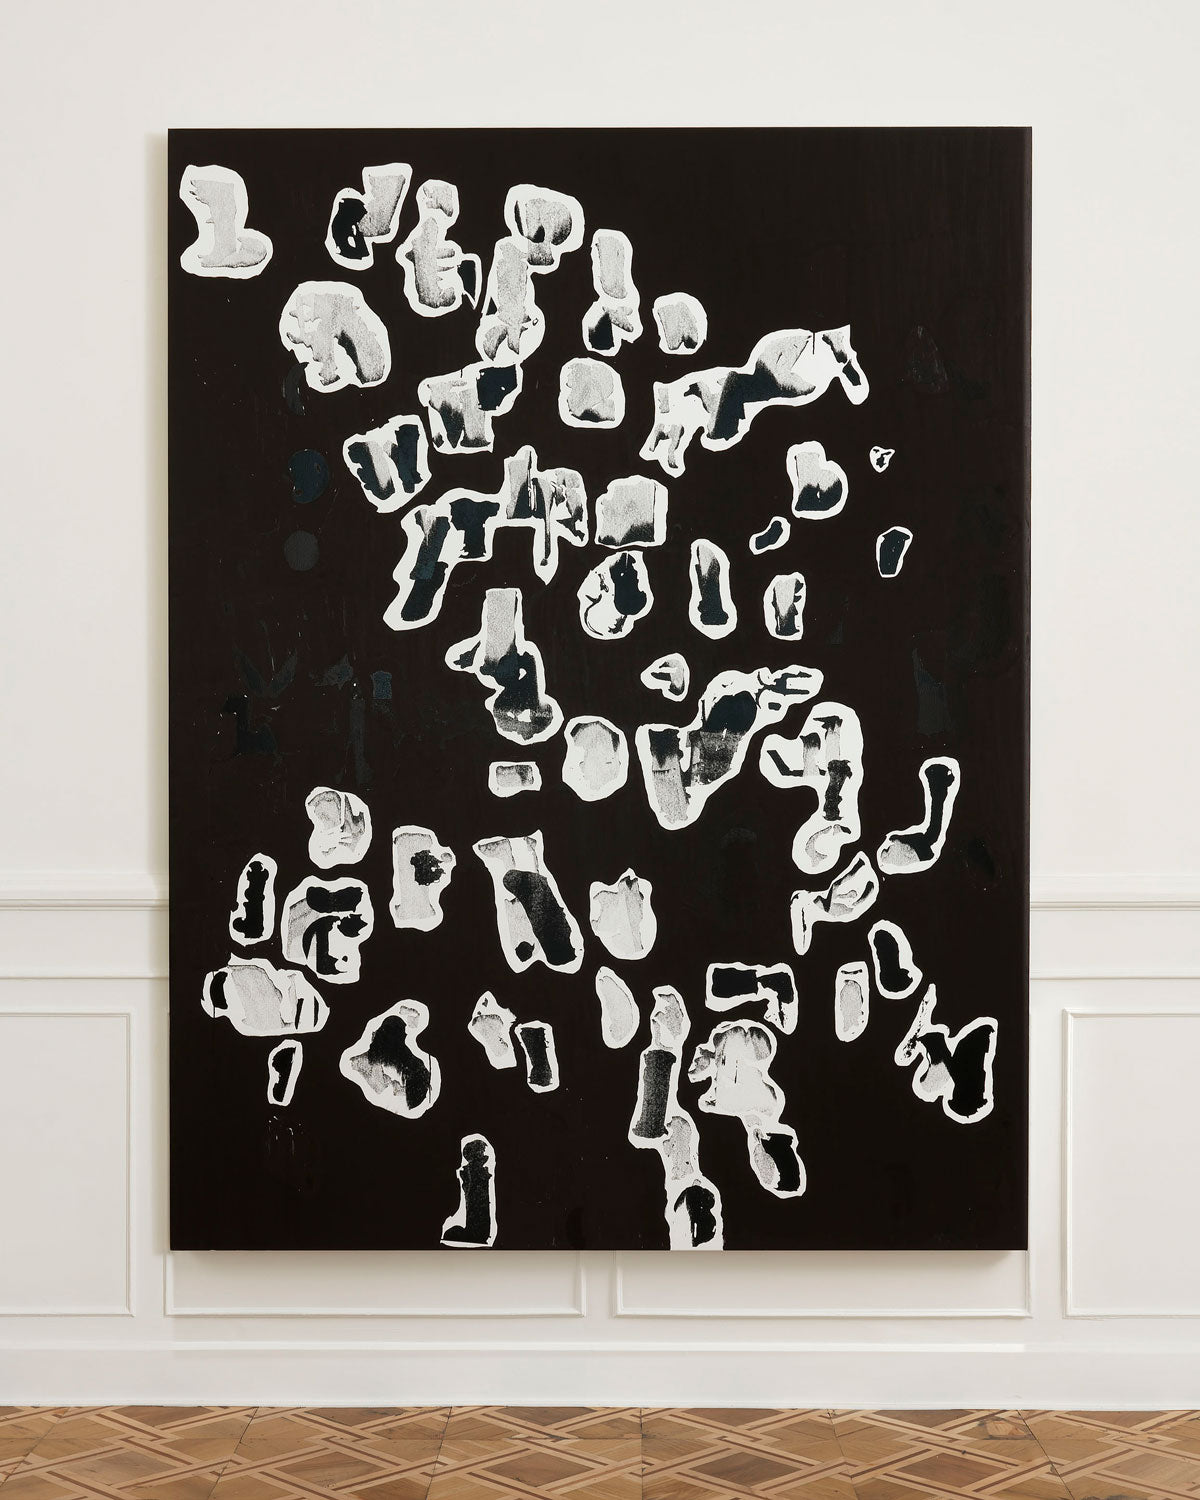 Artist Glenn Ligon uses Krink Paint Marker in new work Debris Field #3, 2018, Etching ink and ink marker on canvas in his solo exhibition at Thomas Dane Gallery in Italy